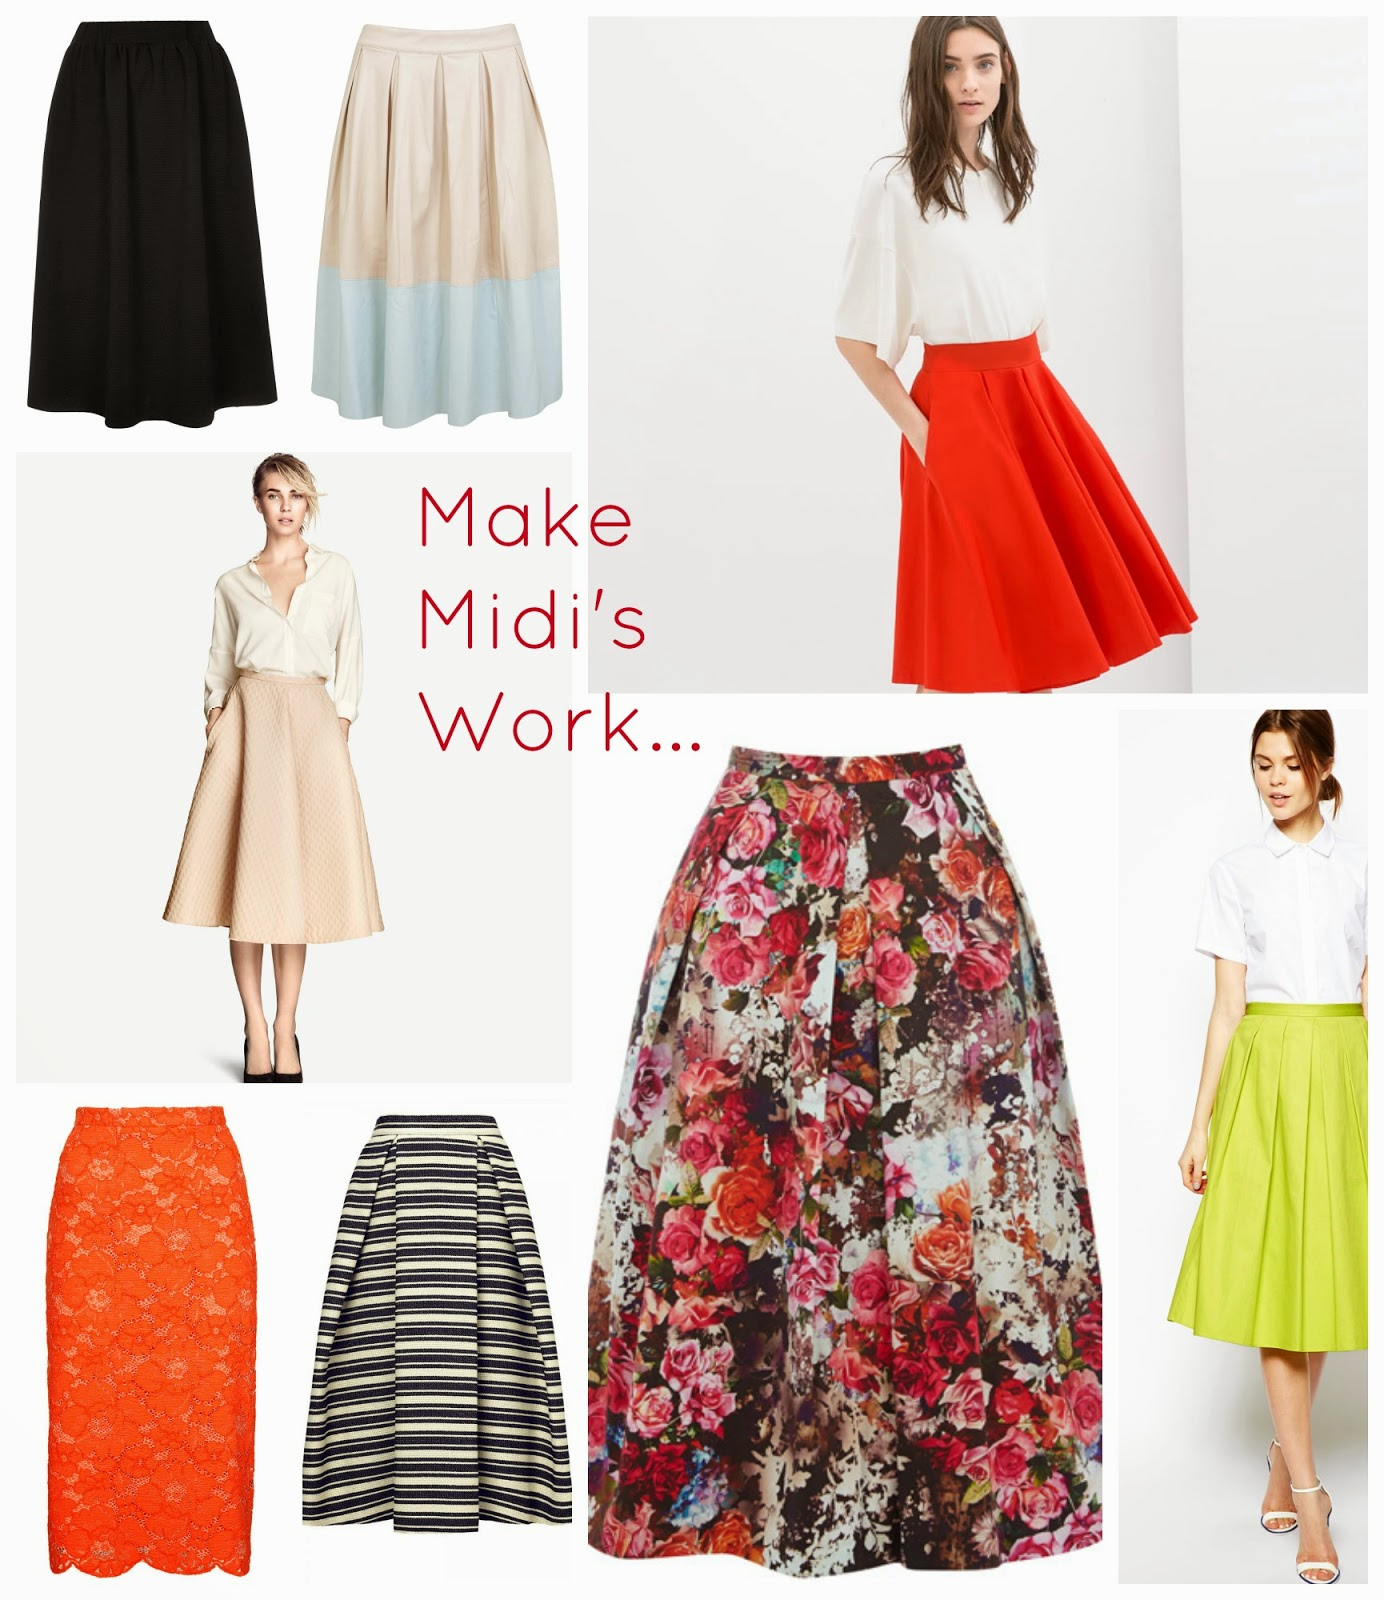 How to make a midi skirt work for... work! Fashions fave new skirt length is easy to wear | fashion | mamasVIB | style | midi skirts | topshop | zara | bode | miss selfrideg | debenhams | marks & spencer | heels | midi skirt | high street | what to wear to work | wedges | sandals | sweat shirts | classic grey tee | monsoon | working mums | mama style | office shoes office clothes | stay at home home | mamasVIb | blog |